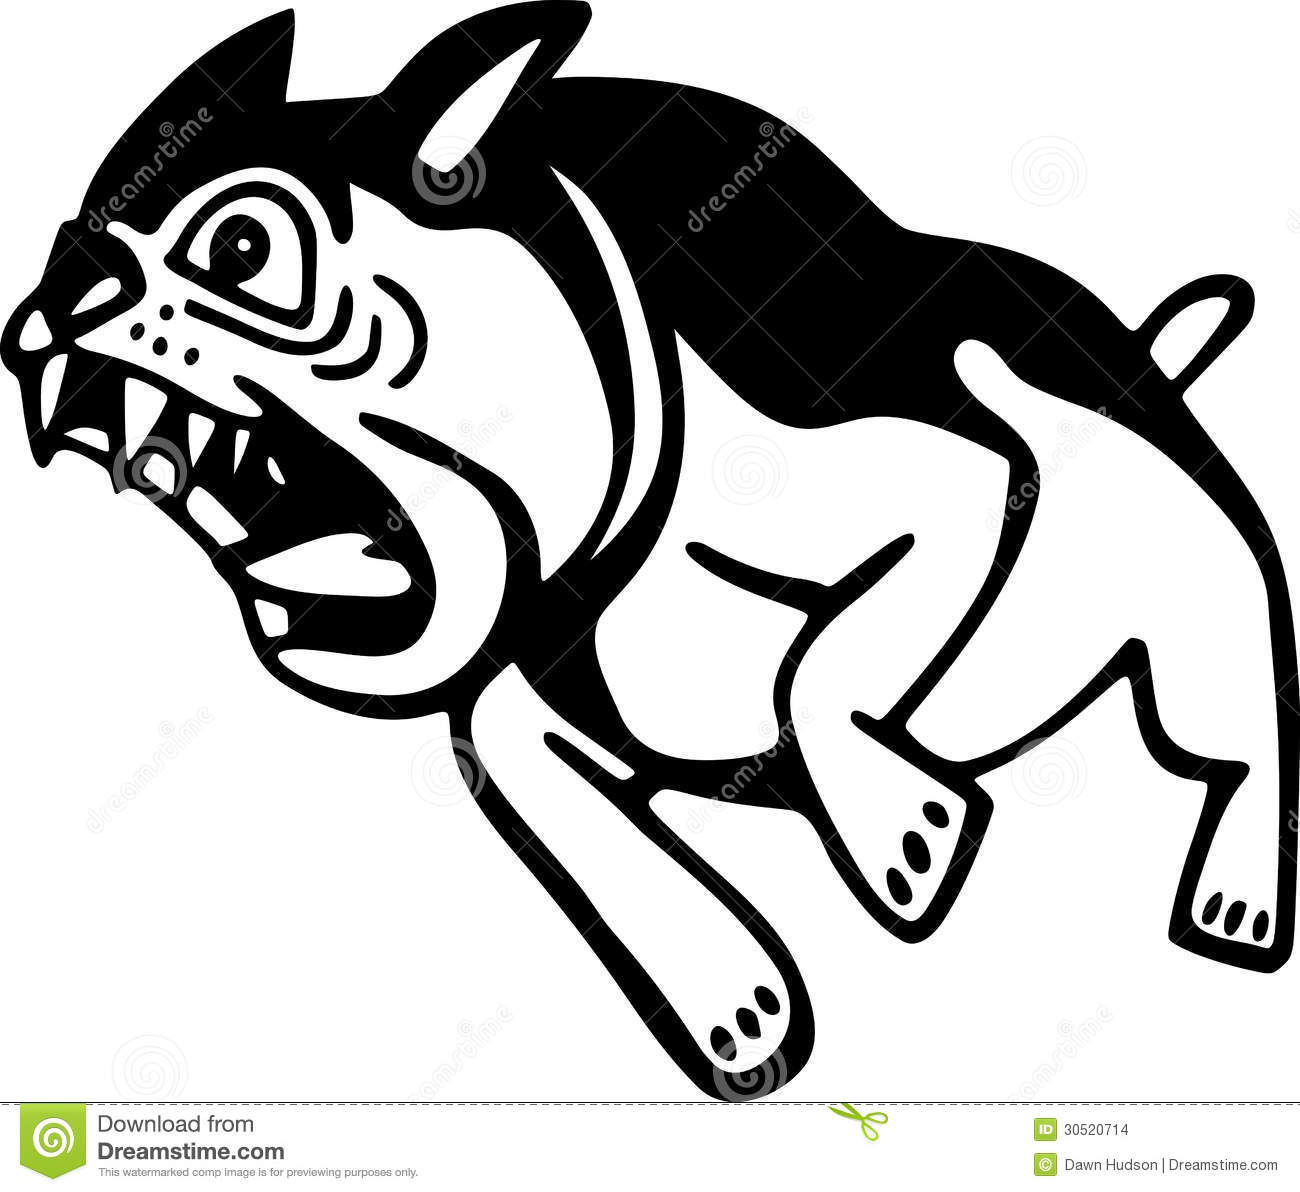 Simple black and white line drawing of a barking angry dog. Angry Black Wolf Drawing